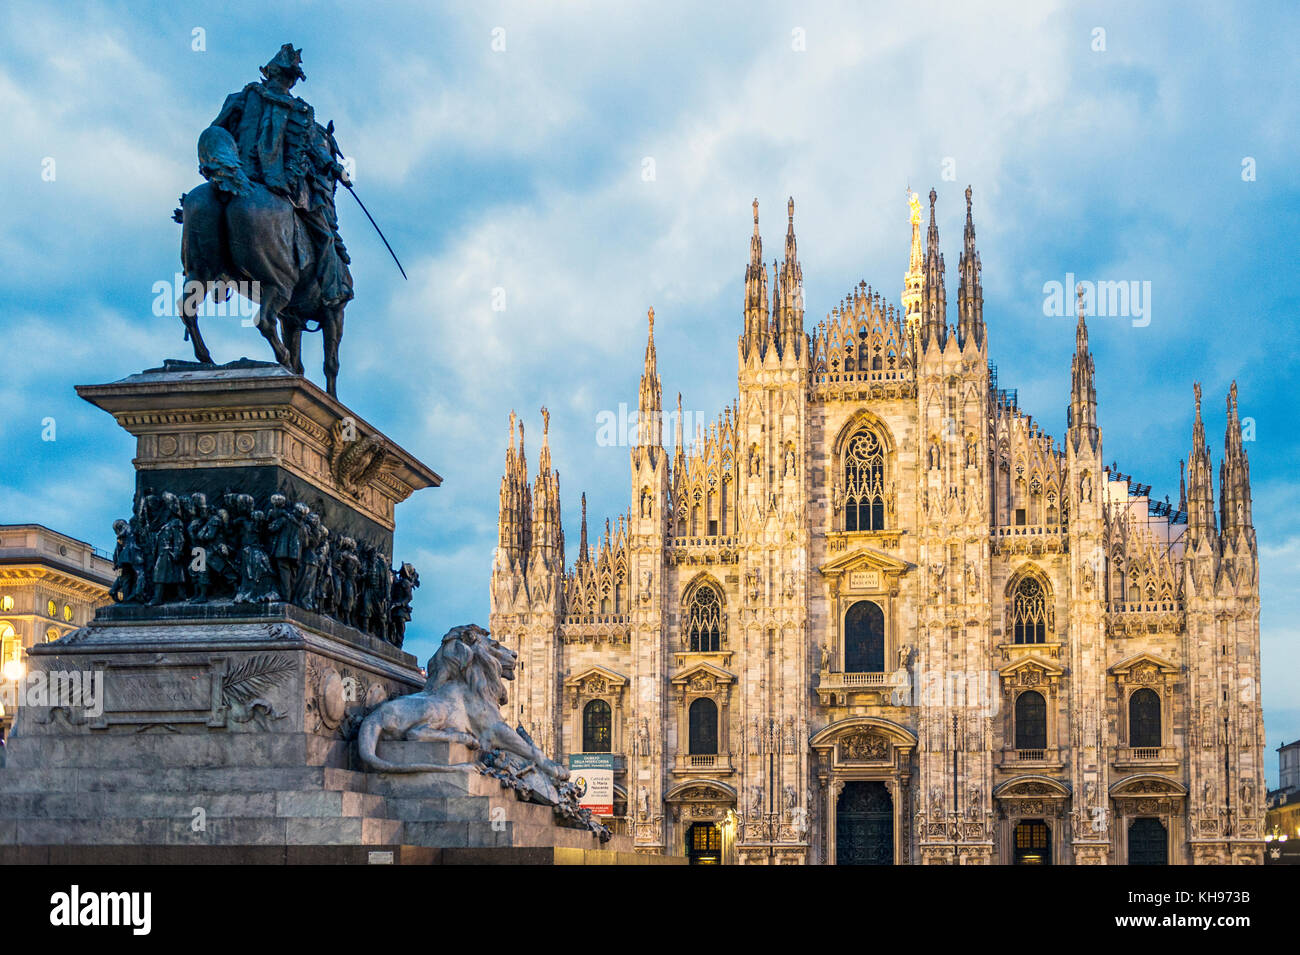 Italy. Lombardy. Milan Cathedral, Duomo di Milano, one of the largest churches in the world with the equestrian - Stock Image